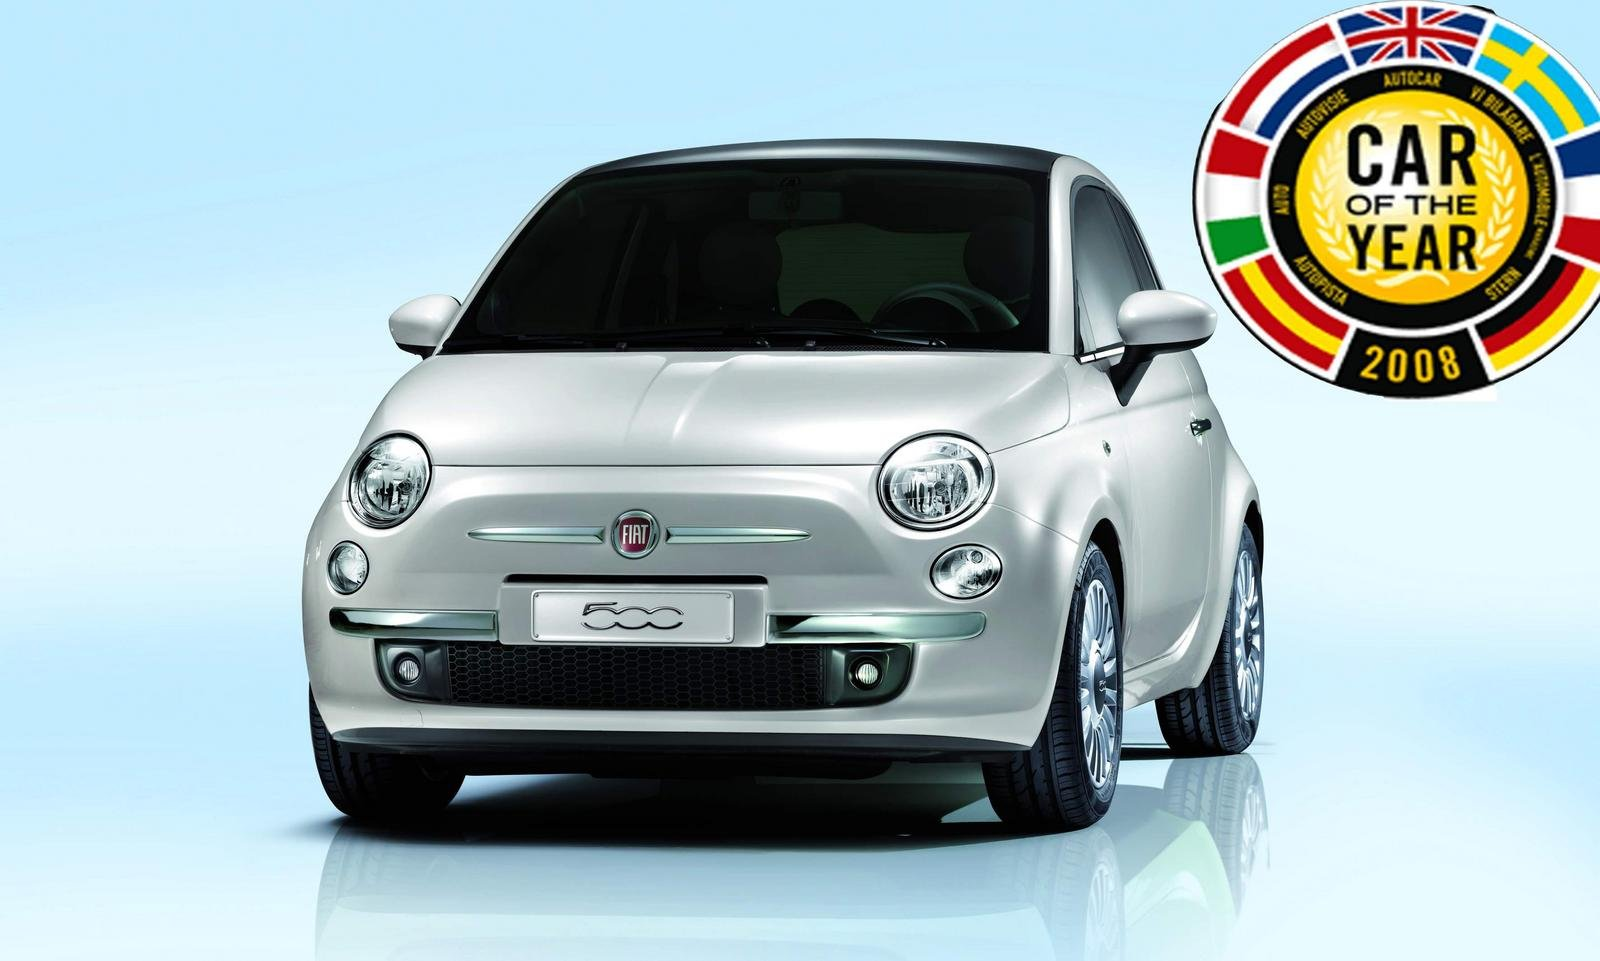 fiat 500 2008 european car of the year news gallery top speed. Black Bedroom Furniture Sets. Home Design Ideas